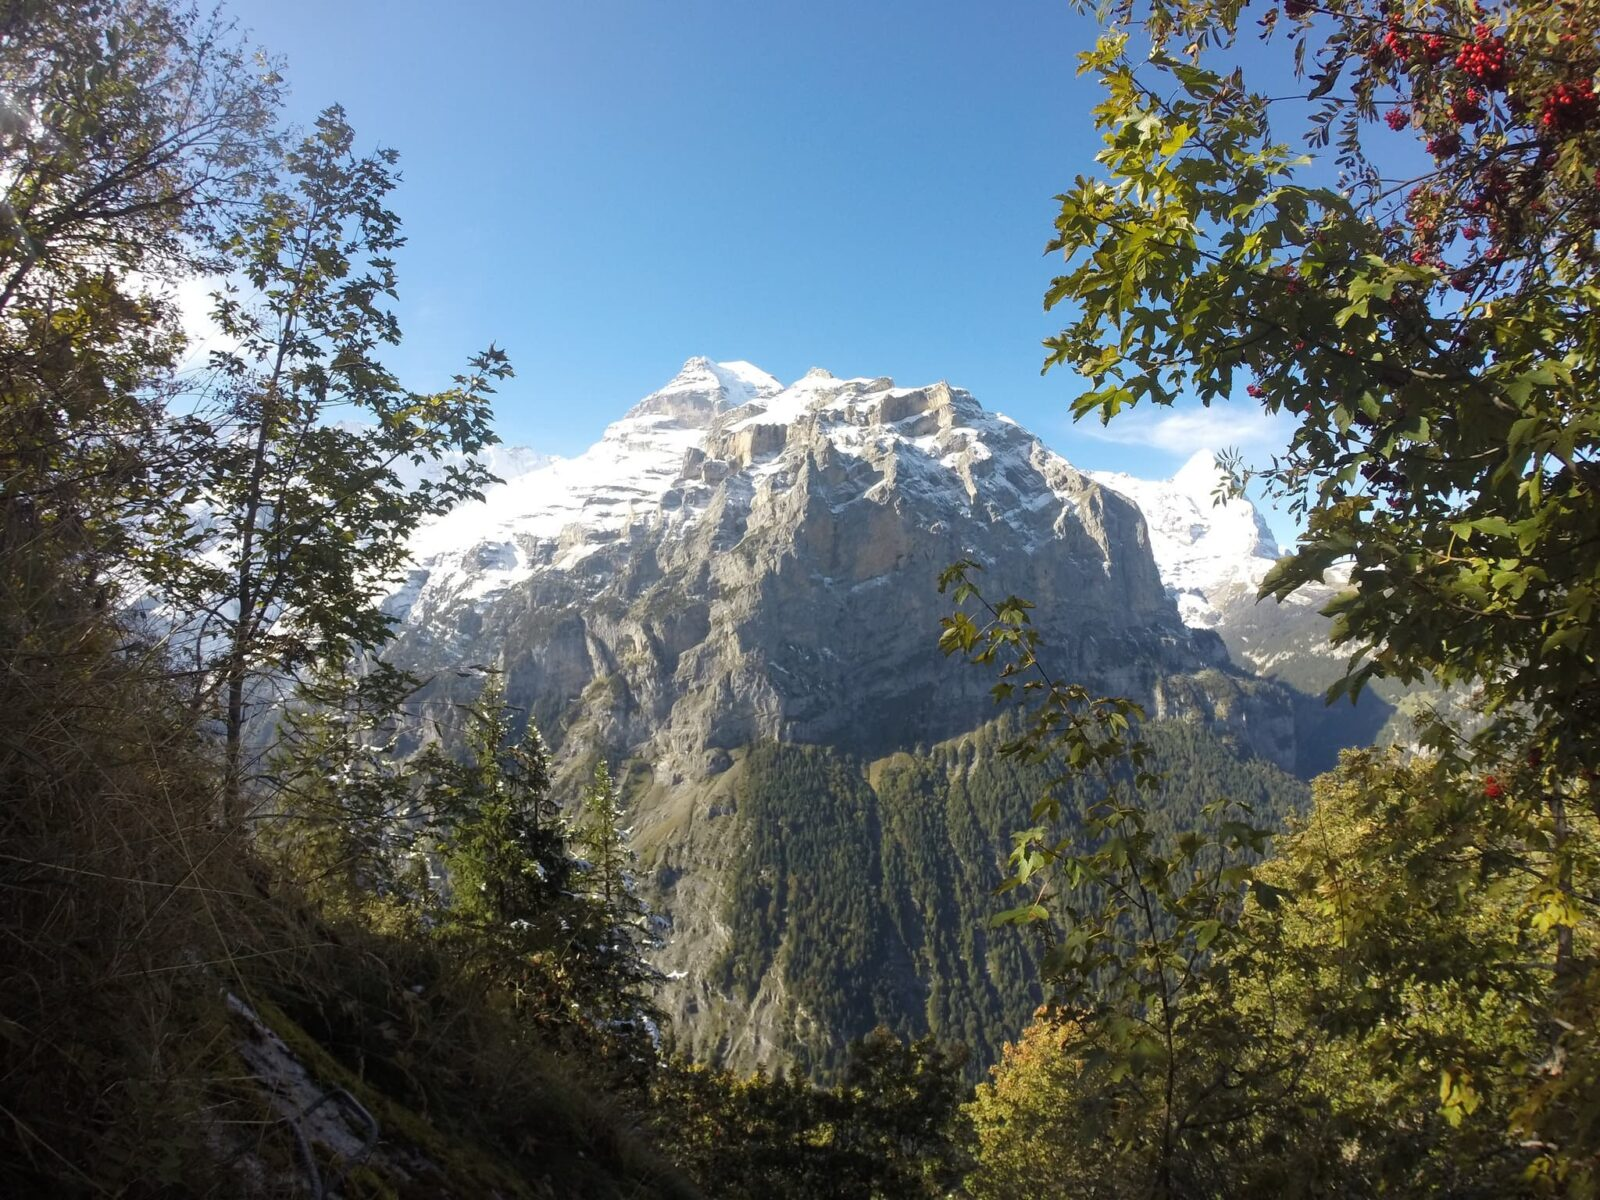 Switzerland - Mountain Jungfrau view from the forest